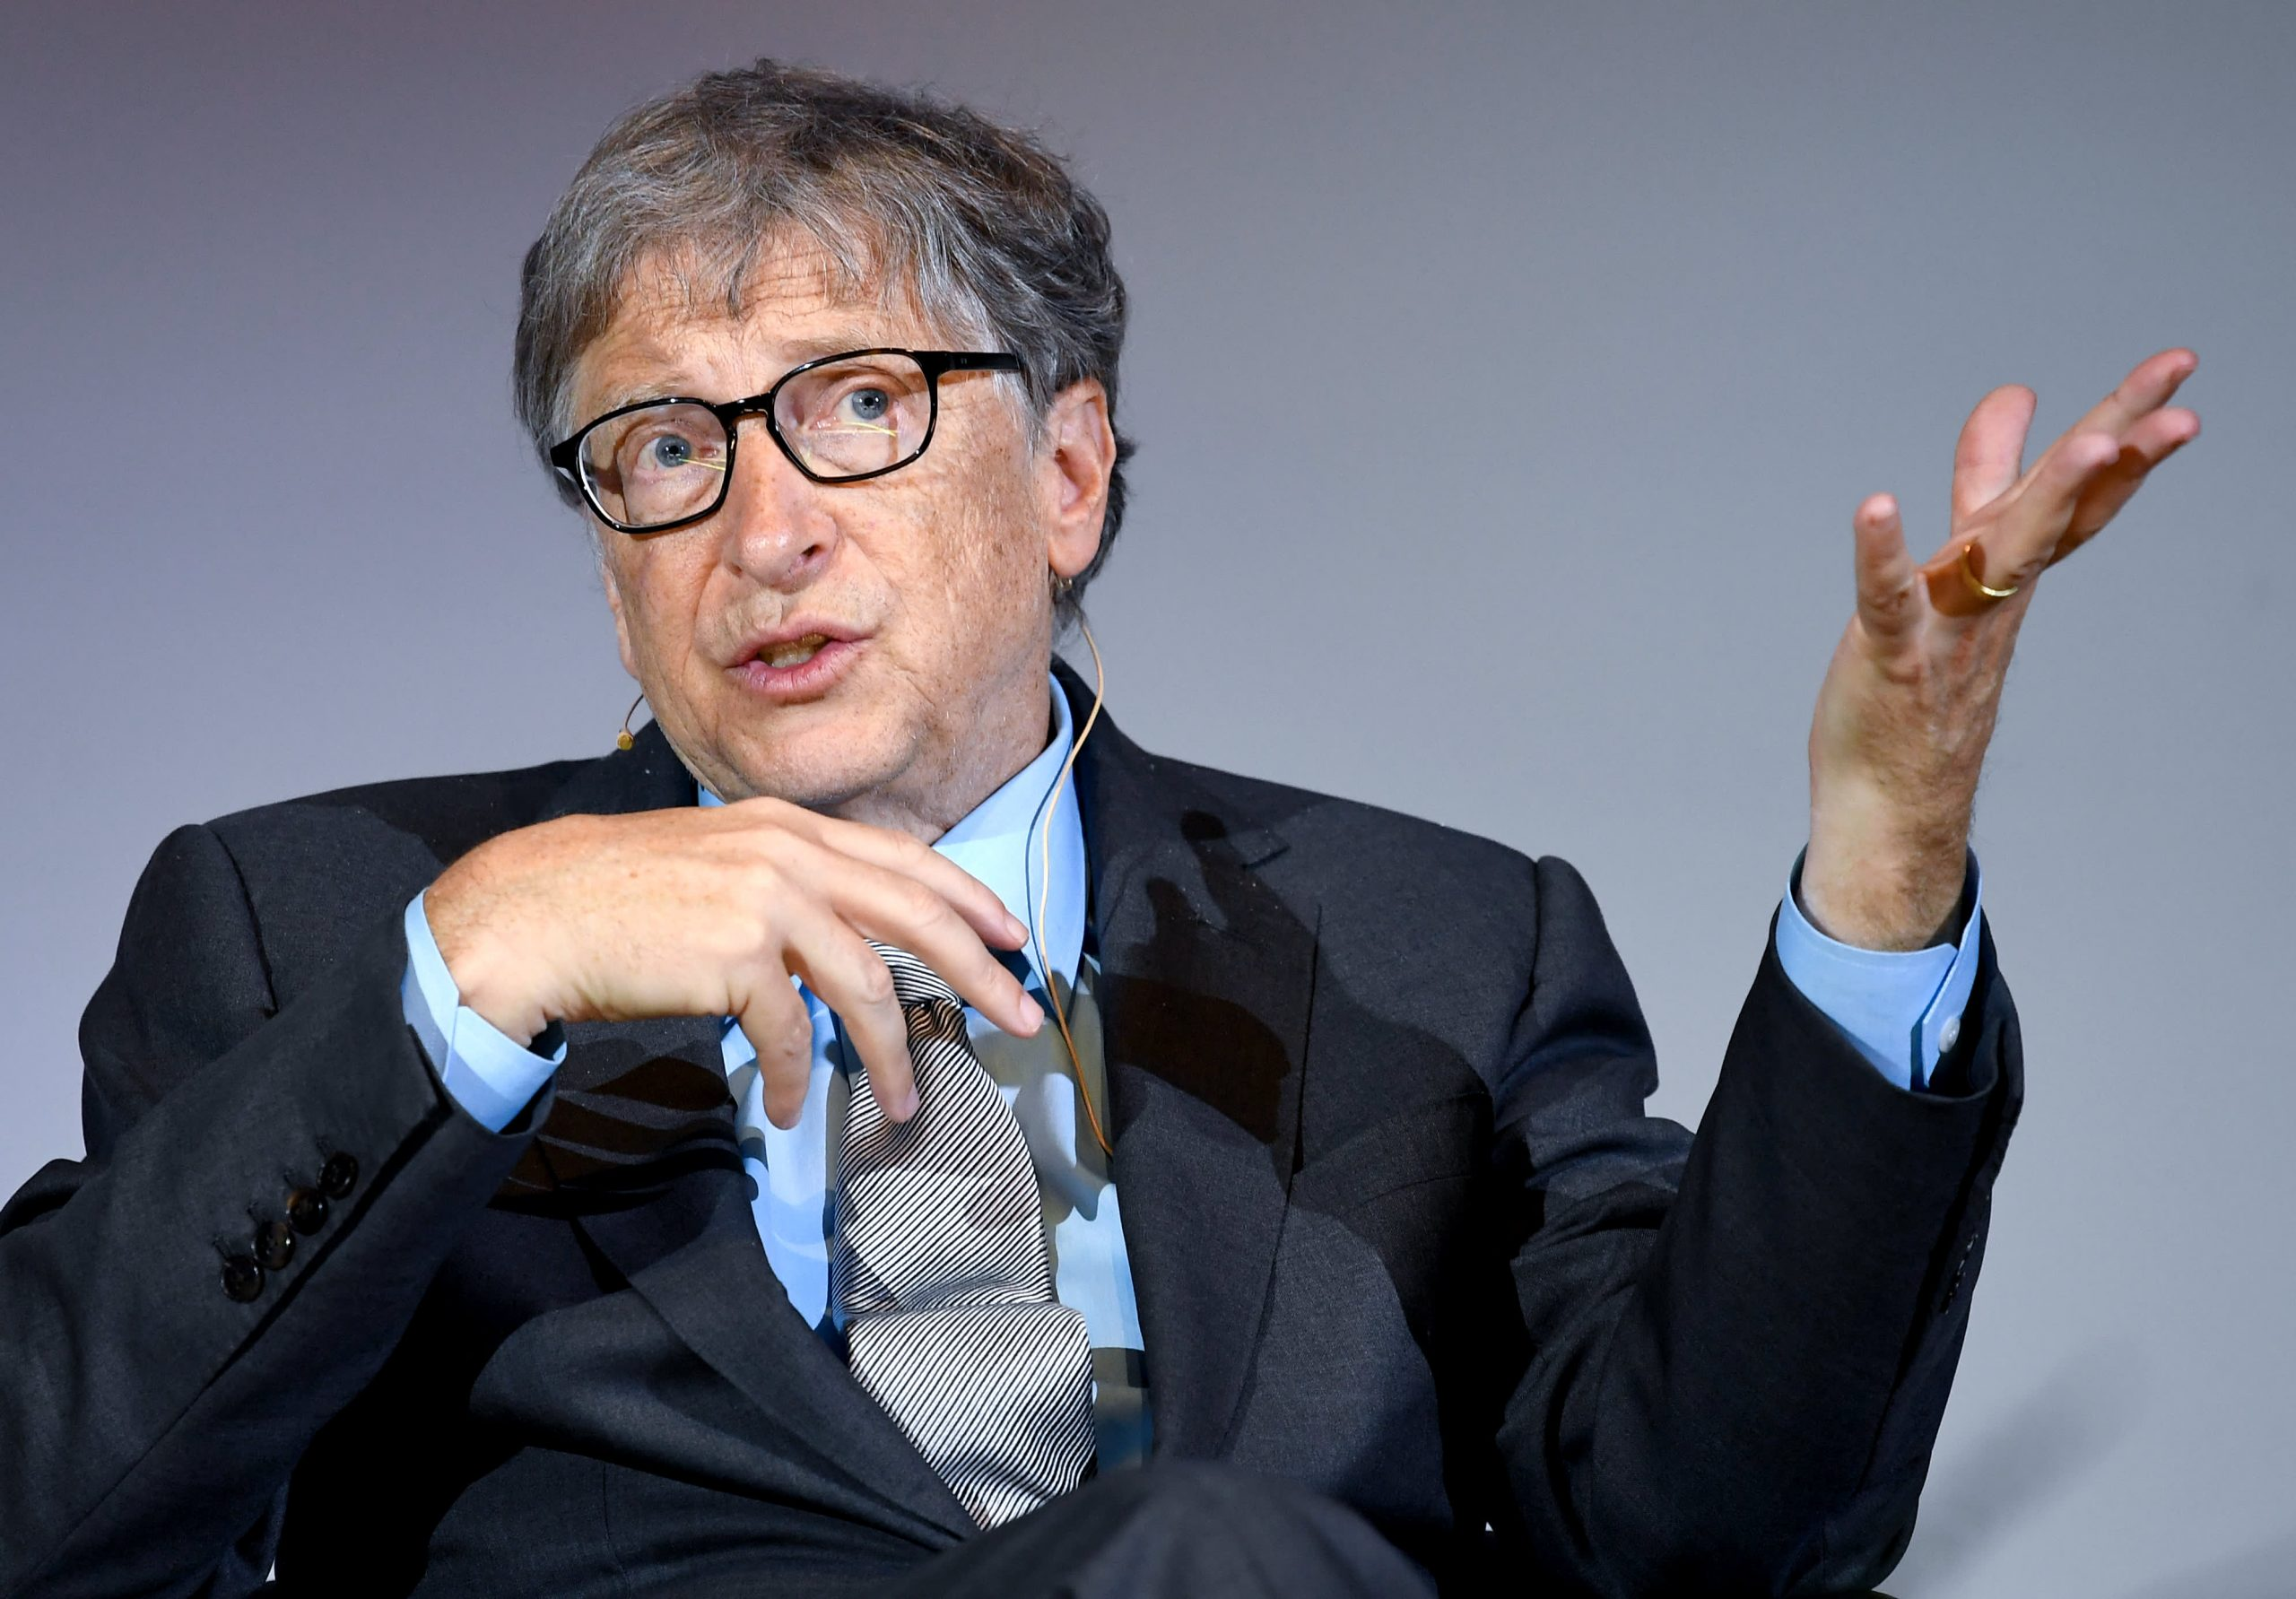 Women are 'absolutely critical' to ensuring everyone has access to finances, Bill Gates says